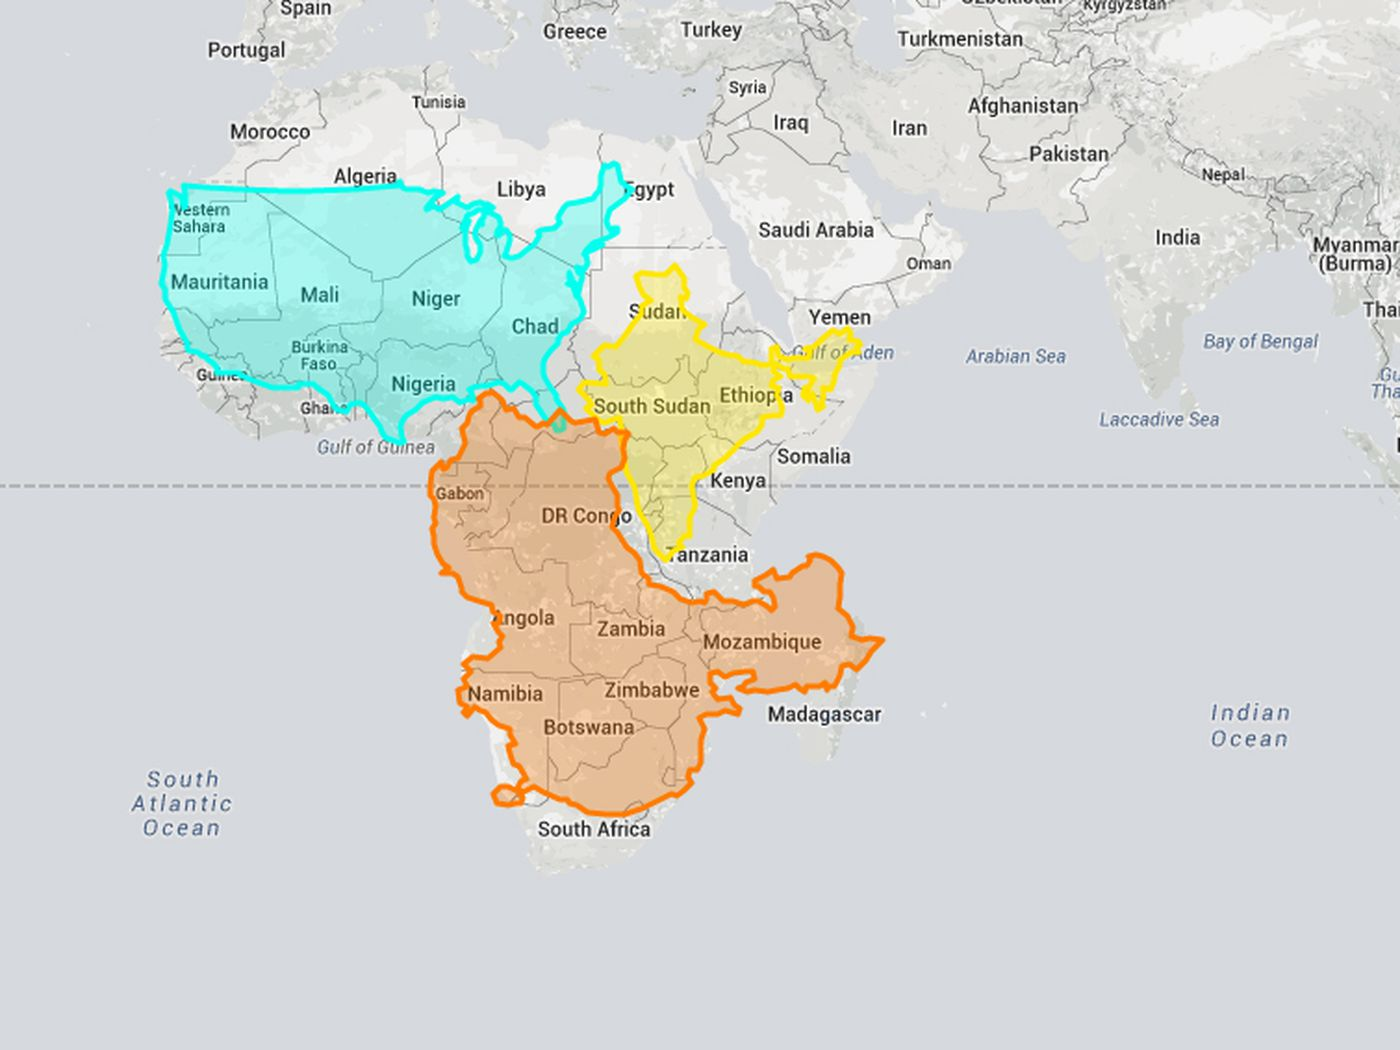 This interactive website shows how wrong Mercator projections can be ...